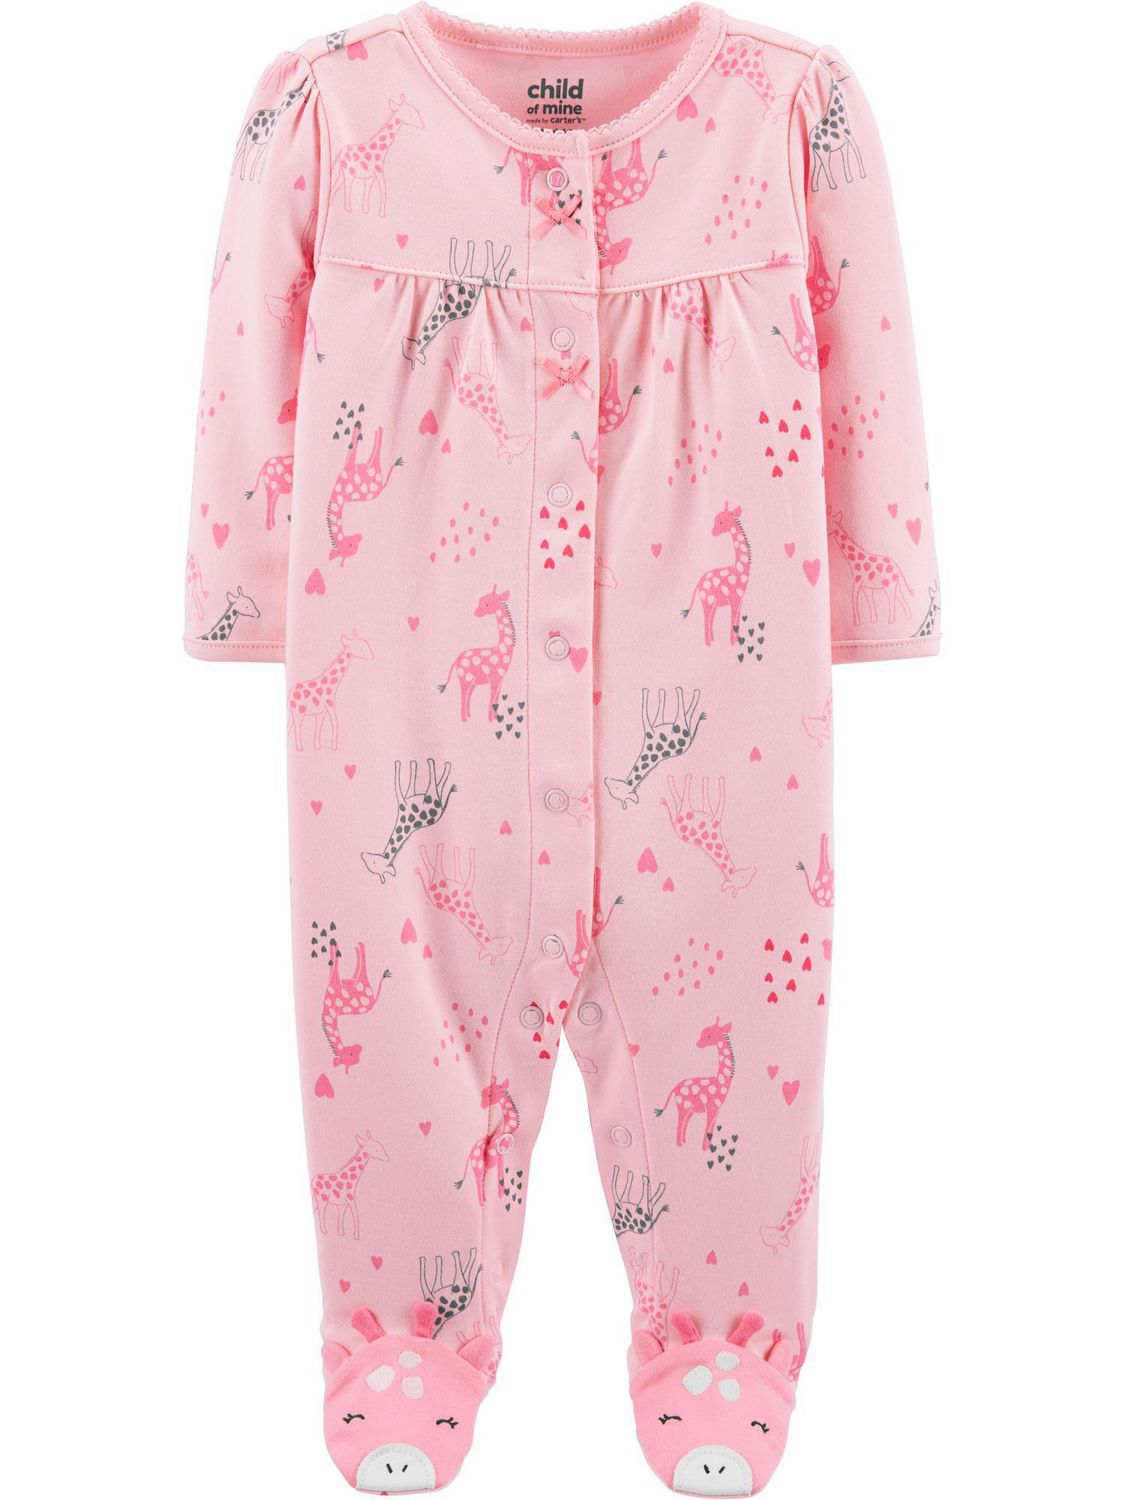 Carters Preemie 2-pk Sleeper Gowns Baby Girl Clothes Pink Bunny